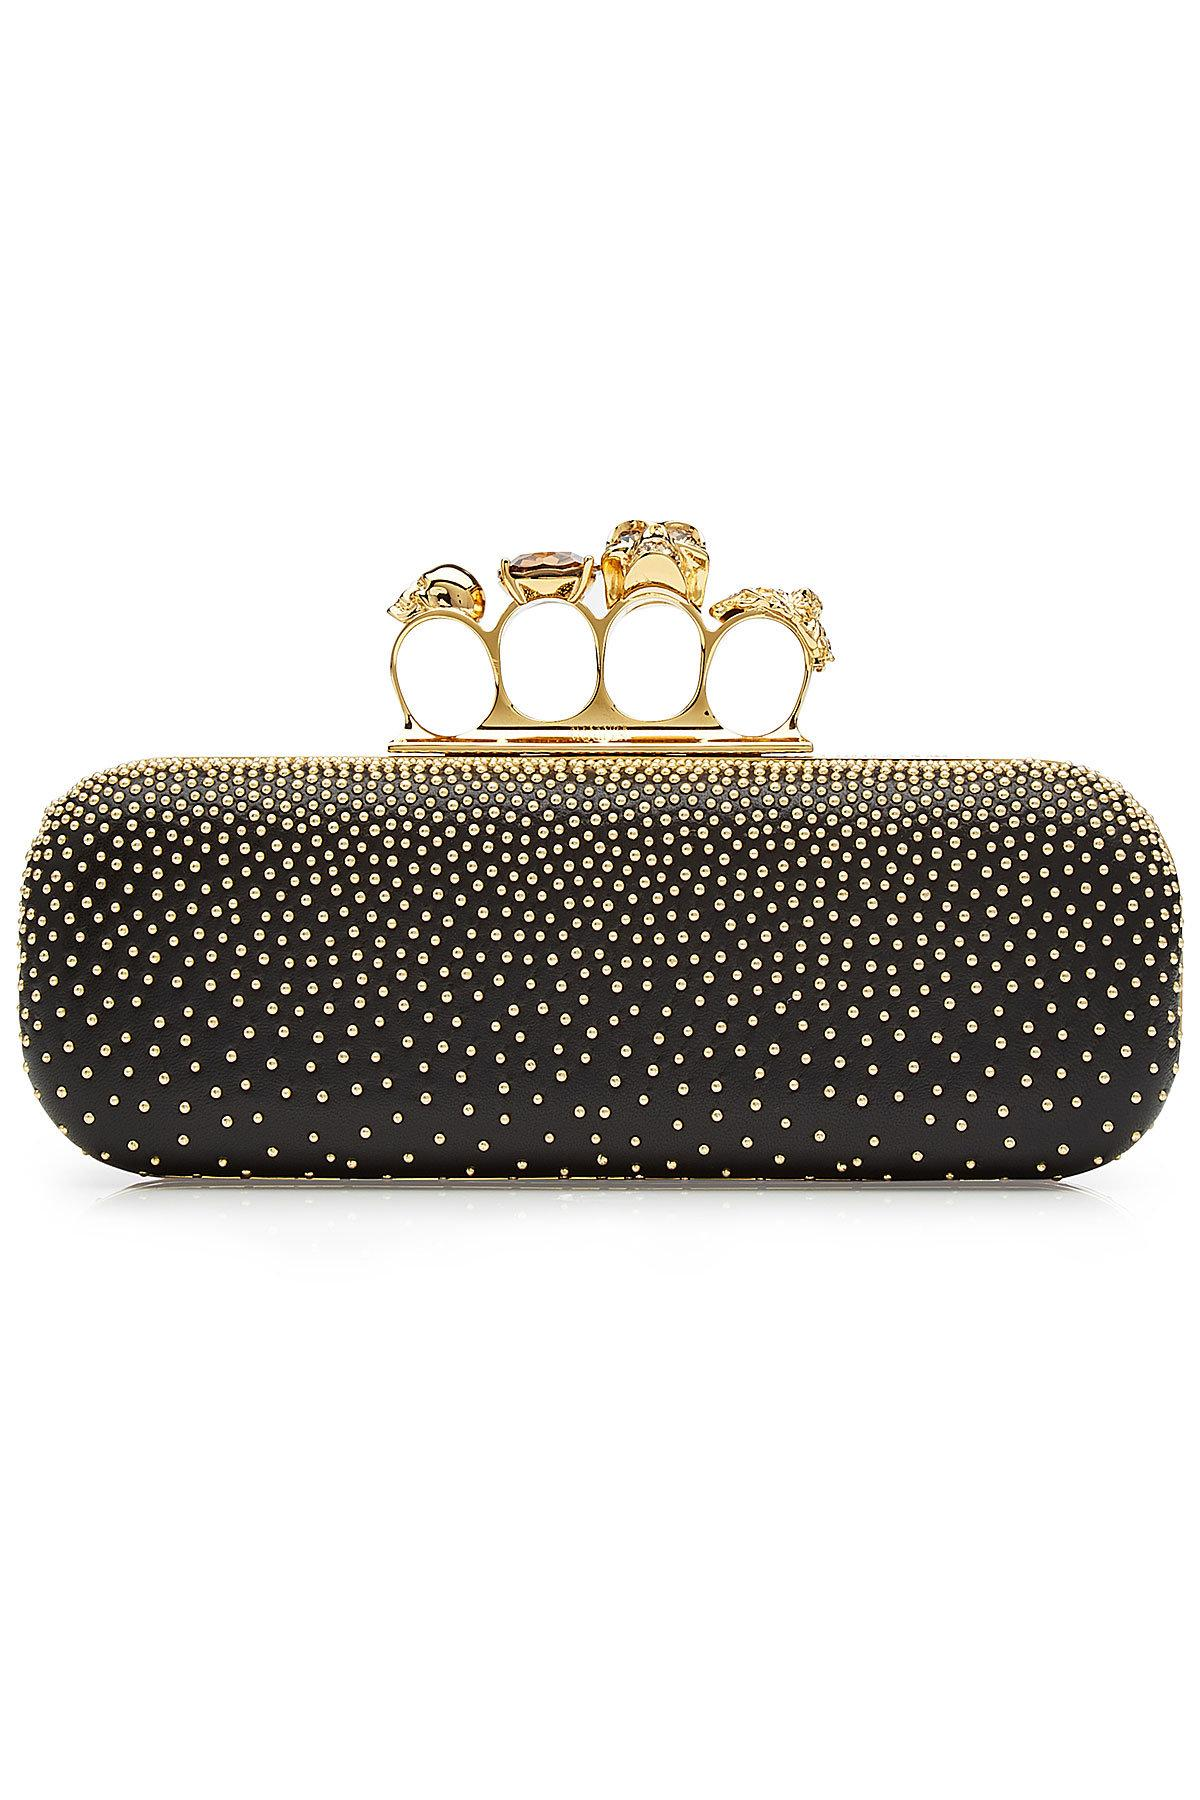 0886bf963b560 Alexander Mcqueen Knuckle Studded Leather Box Clutch Bag, Black ...